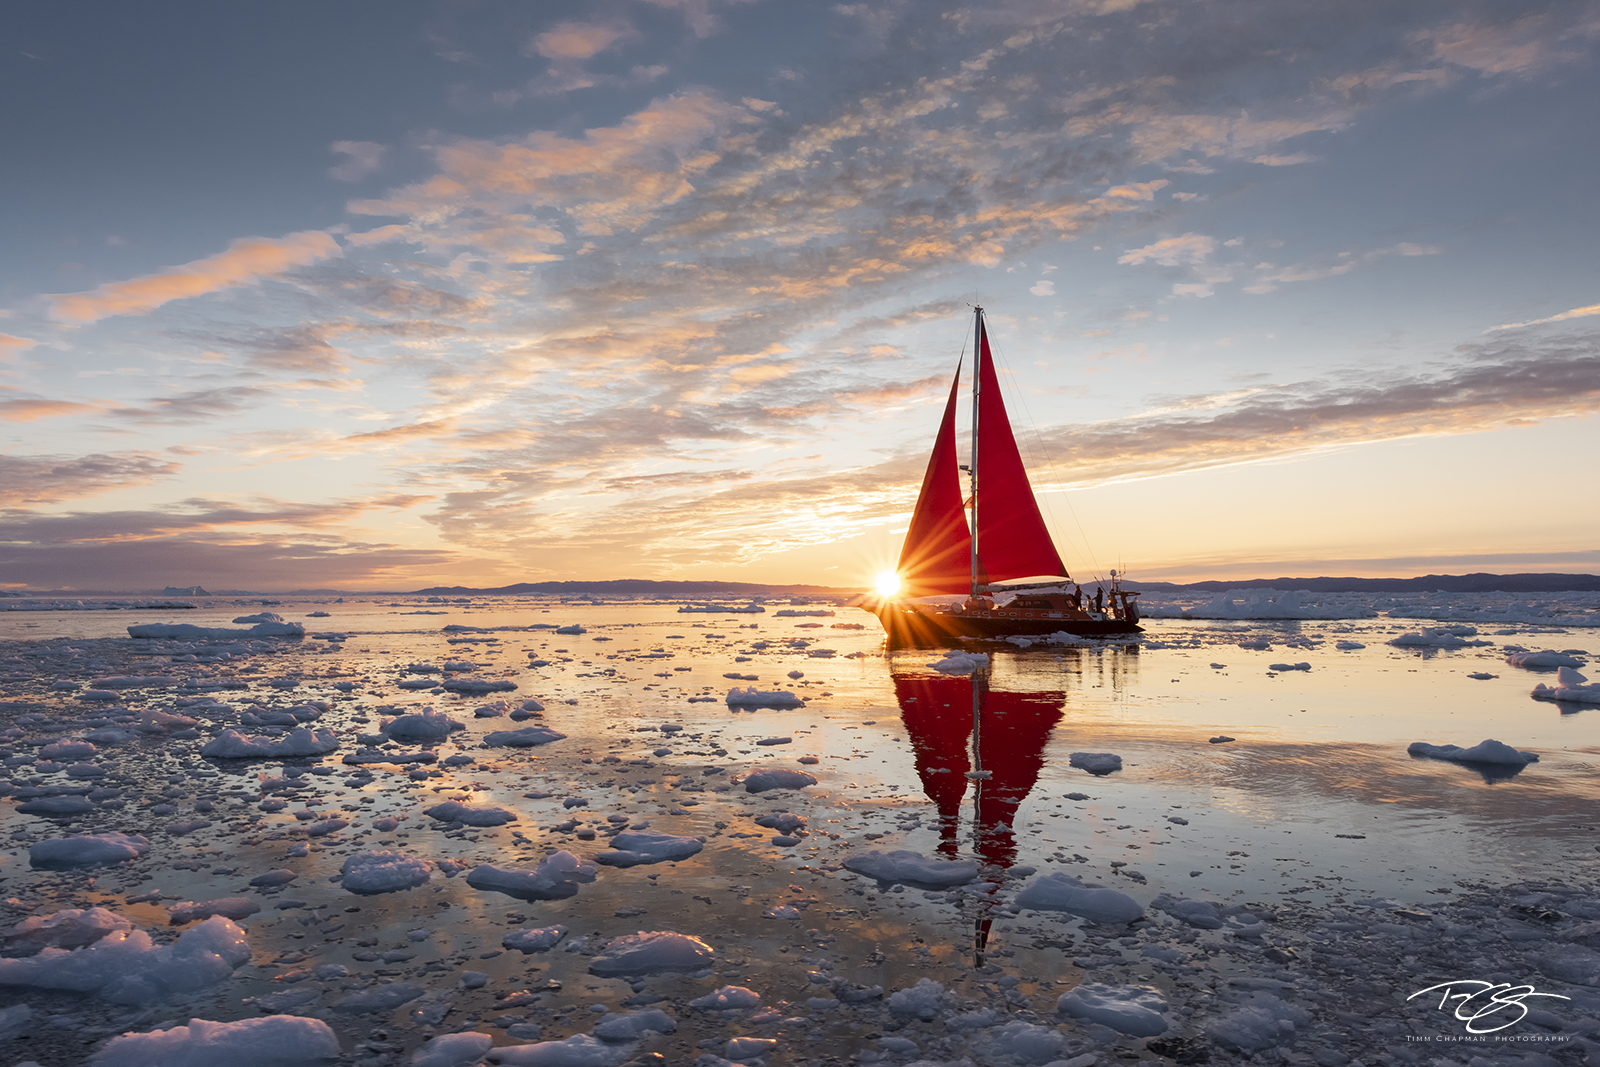 ice; iceberg; disko bay; dusk; twilight; predawn; sunrise; icefjord; ship; sailboat; sailing; schooner; sails; red sails;  scarlet sails, sunburst, yacht